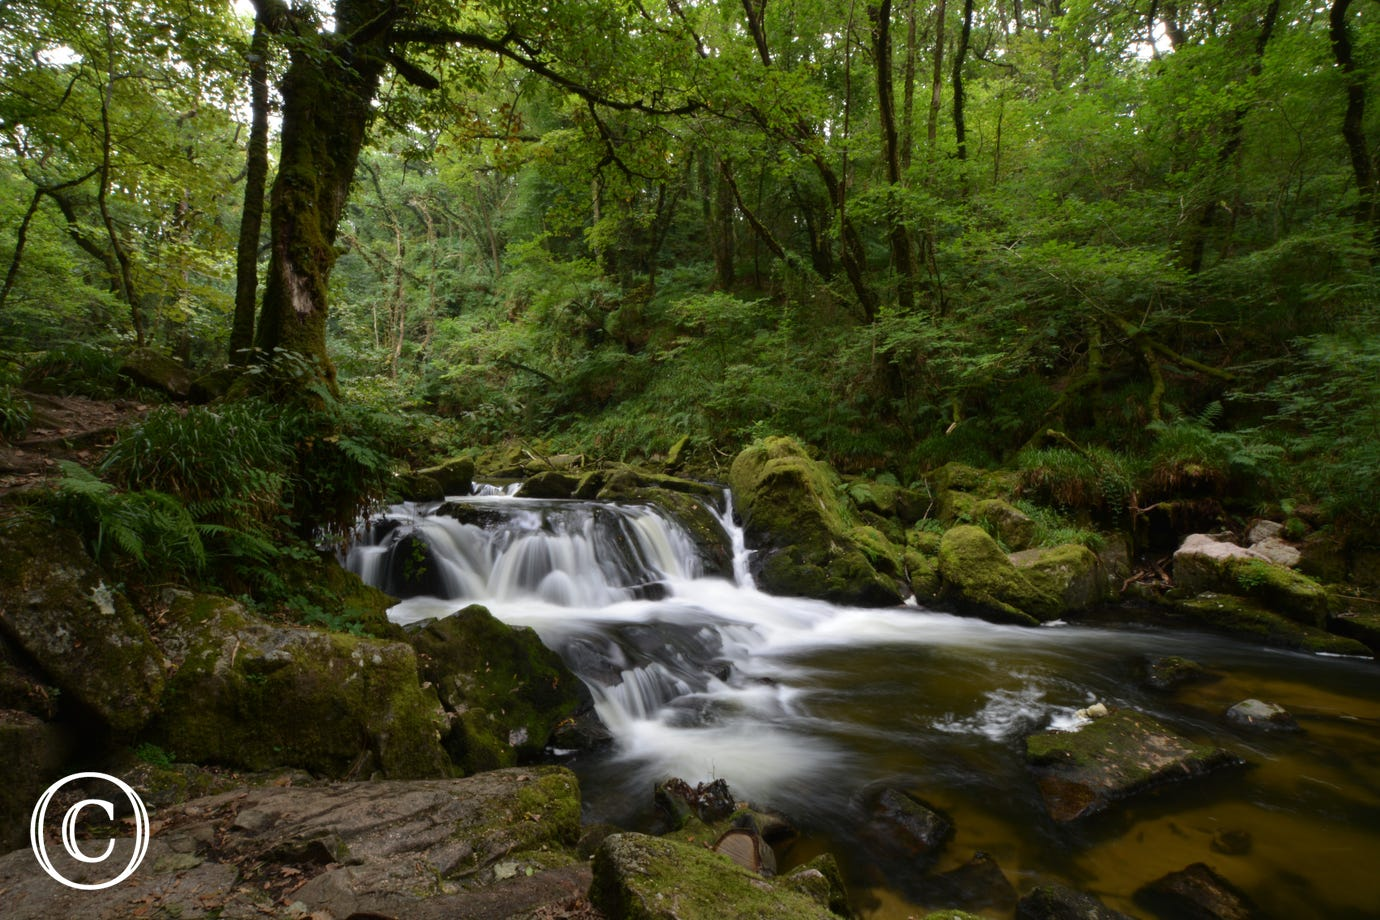 Only half an hour's drive to the spectacular Golitha Falls on Bodmin Moor